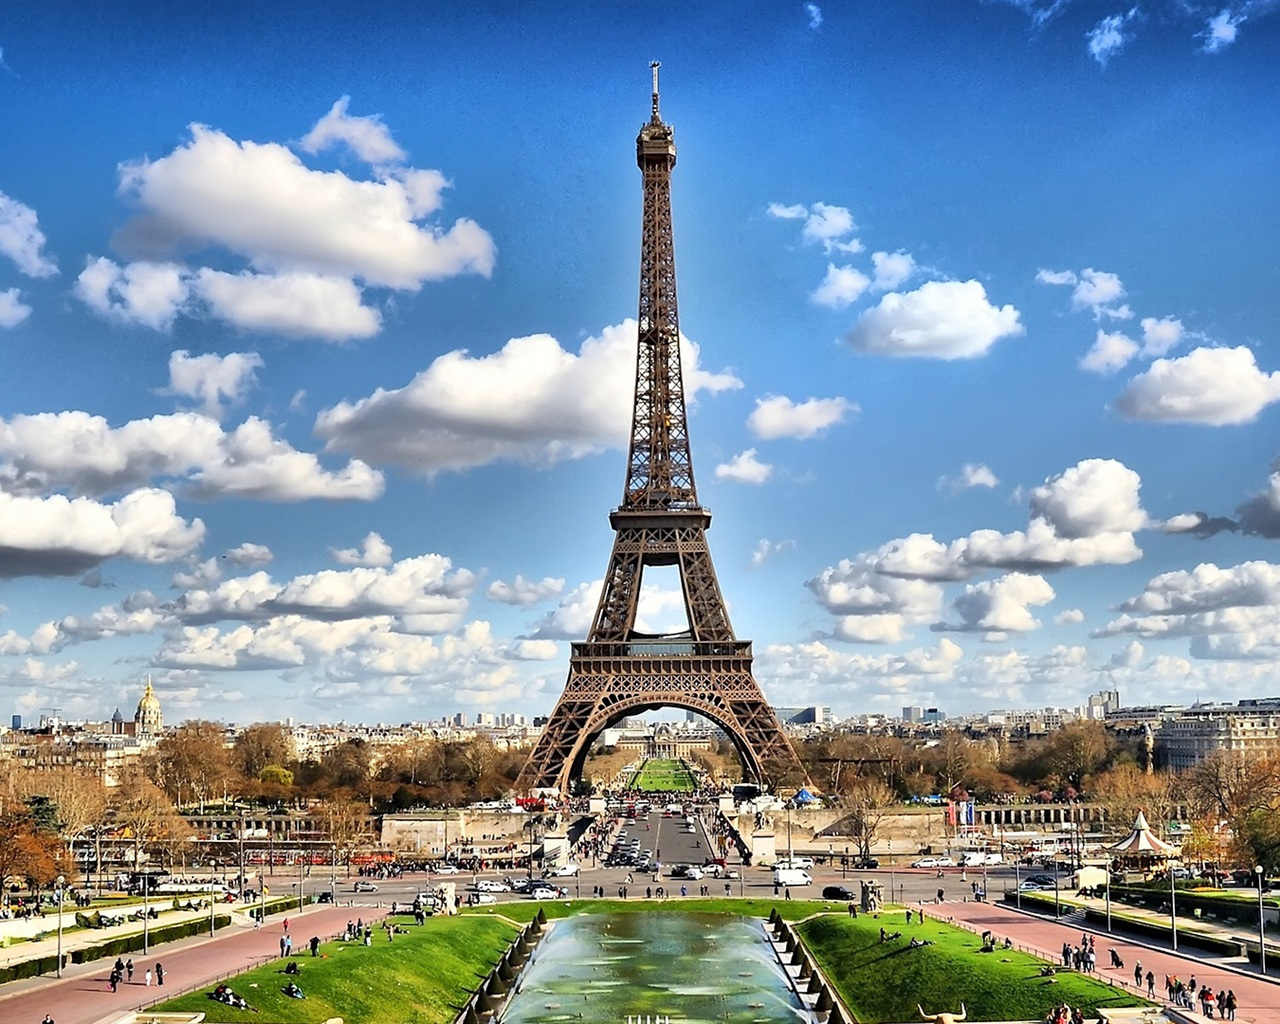 Eiffel Tower Paris 3 HD Wallpaper